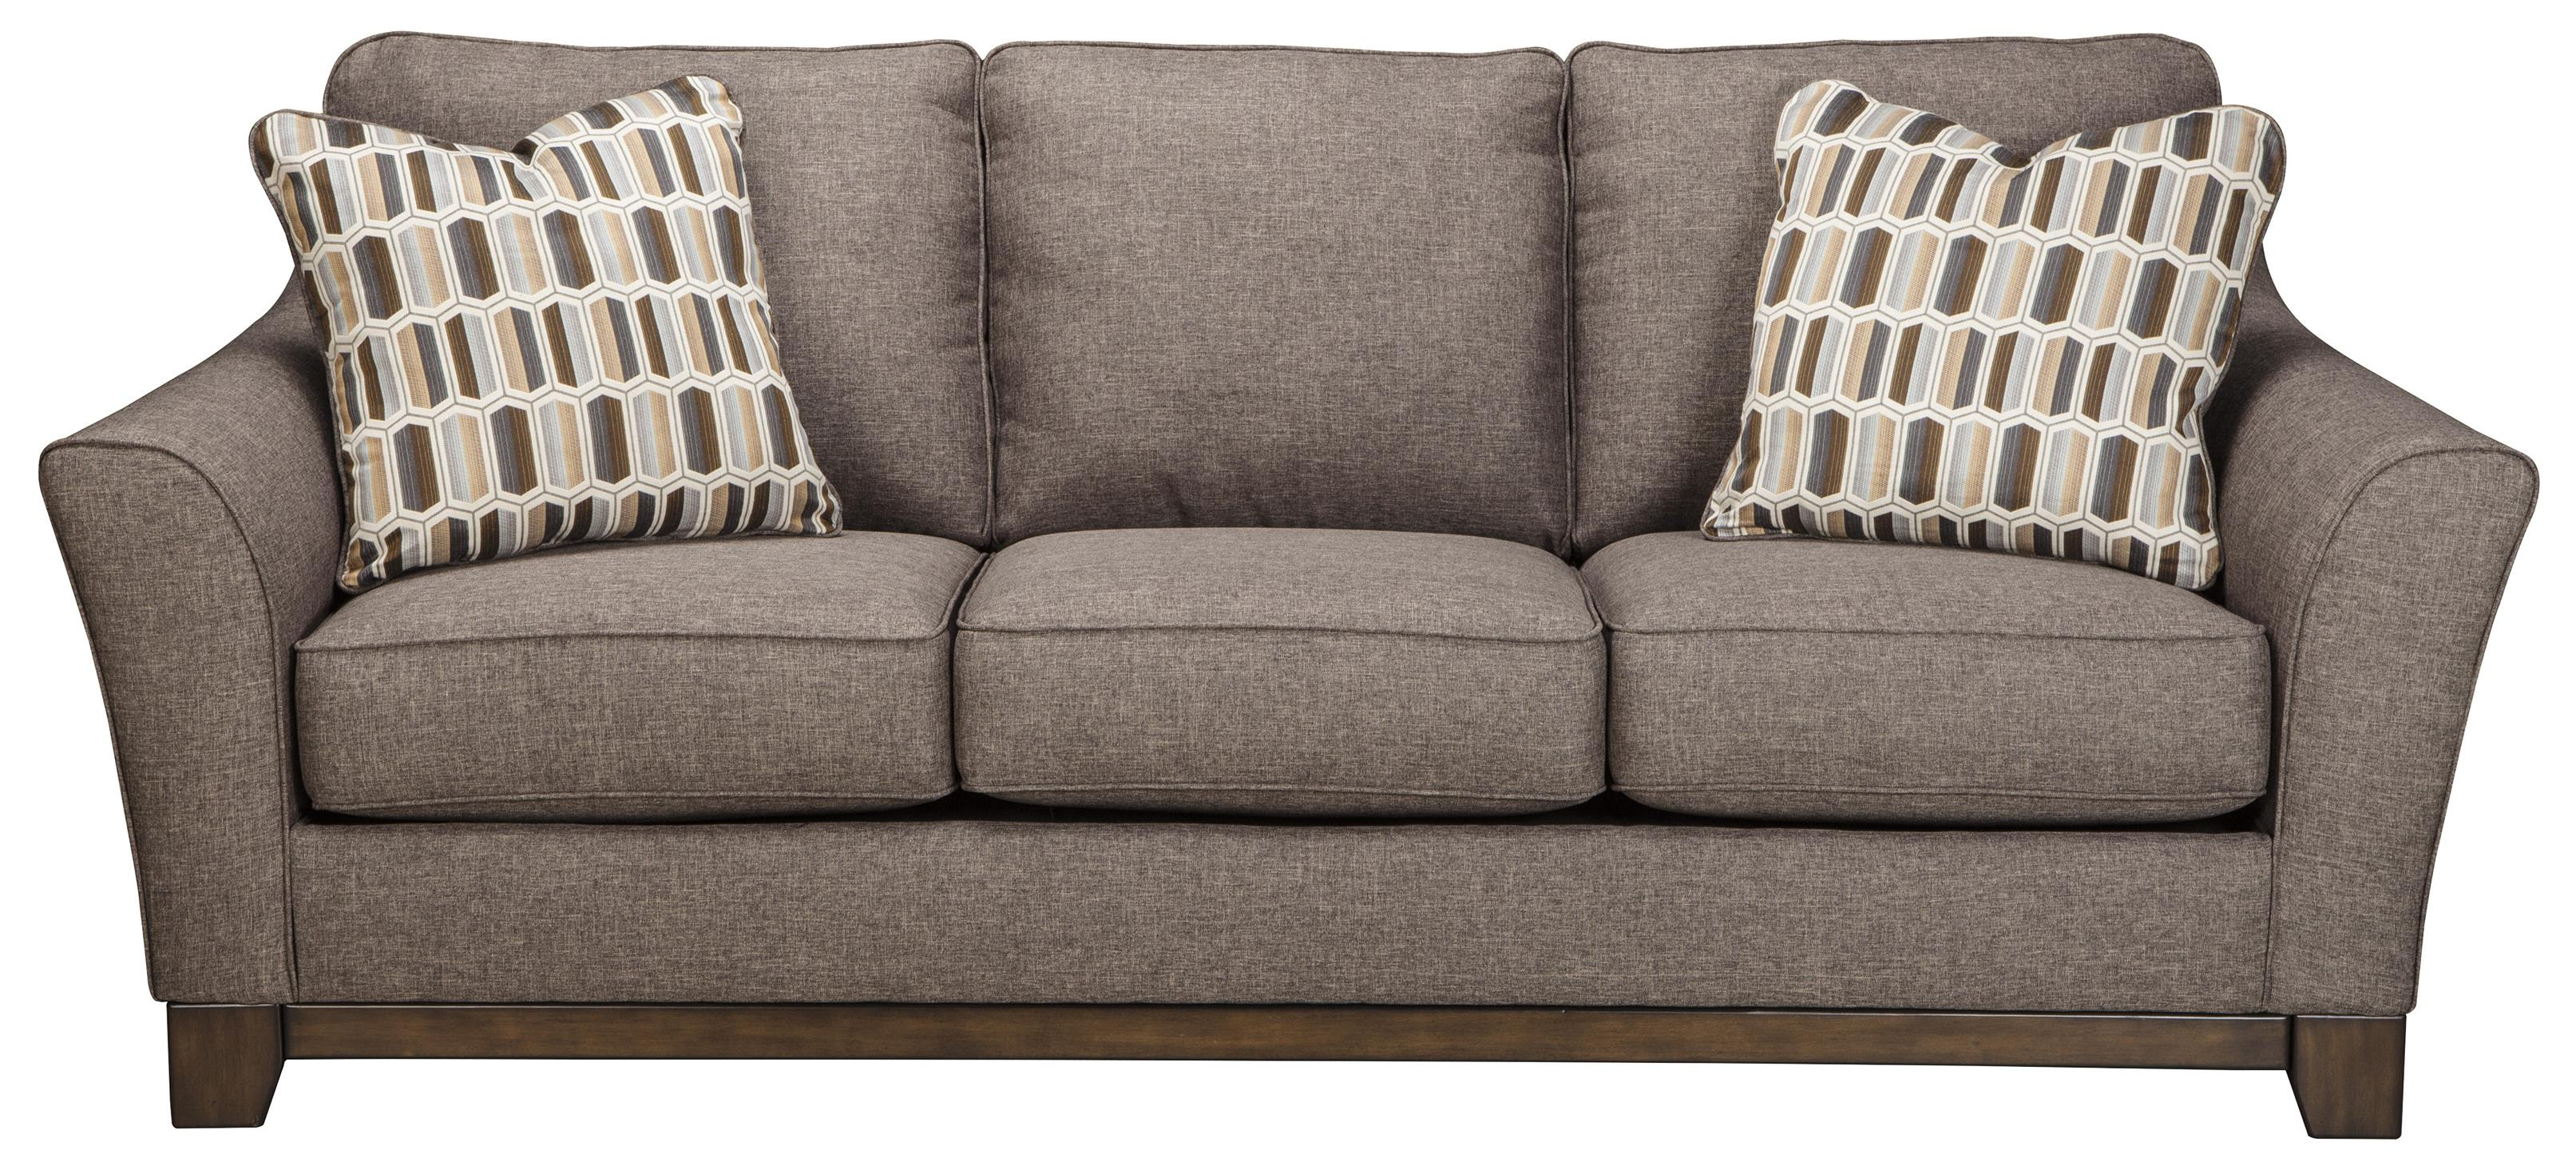 Contemporary sofa with front wood rail by benchcraft for Sectional sofas wolf furniture